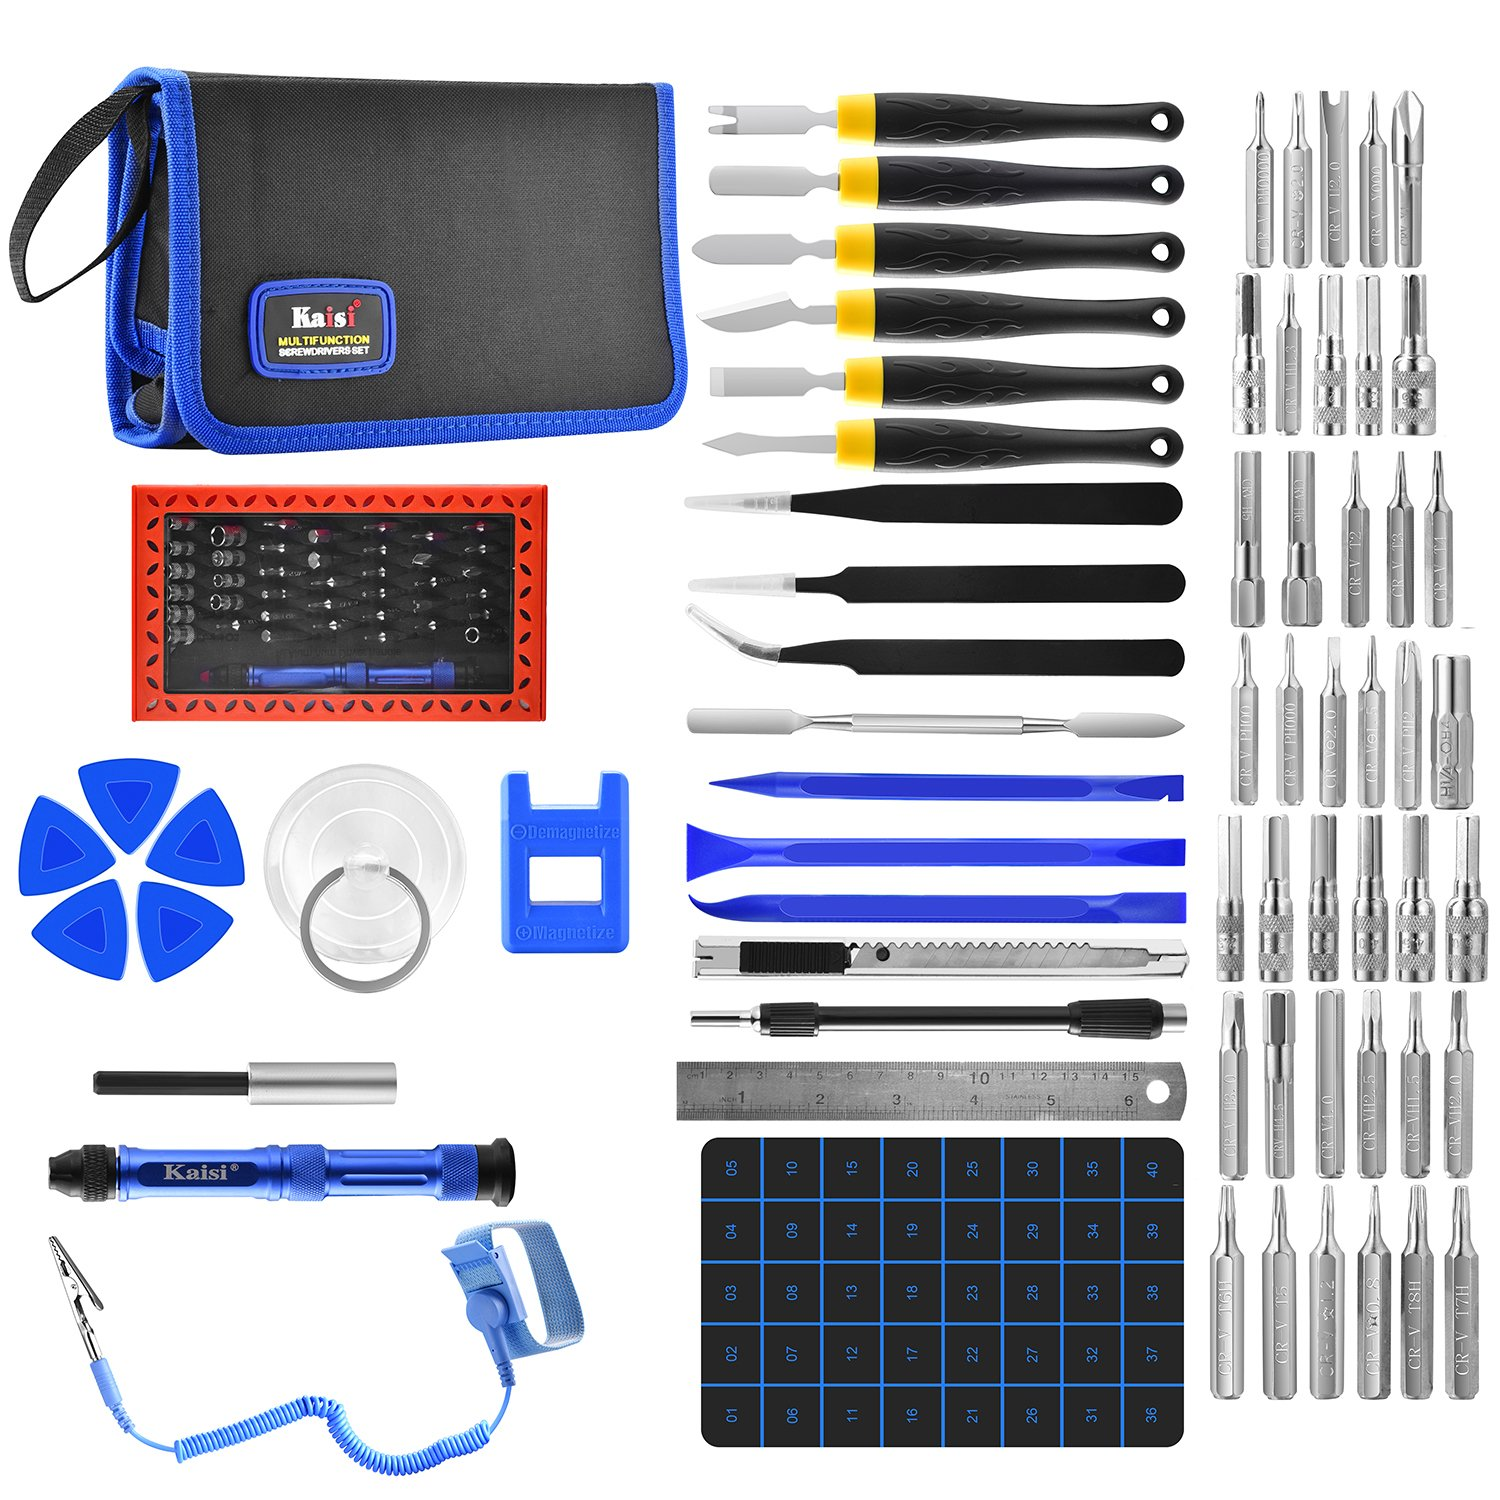 Kaisi Repair Tools Kit 67 in 1 Precision Screwdriver Set with Magnetic Driver Kit, Professional Electronics Repair Kit with Portable Bag Compatible For Cell Phone, iPhone, iPad, Watch, Tablets, PC Etc